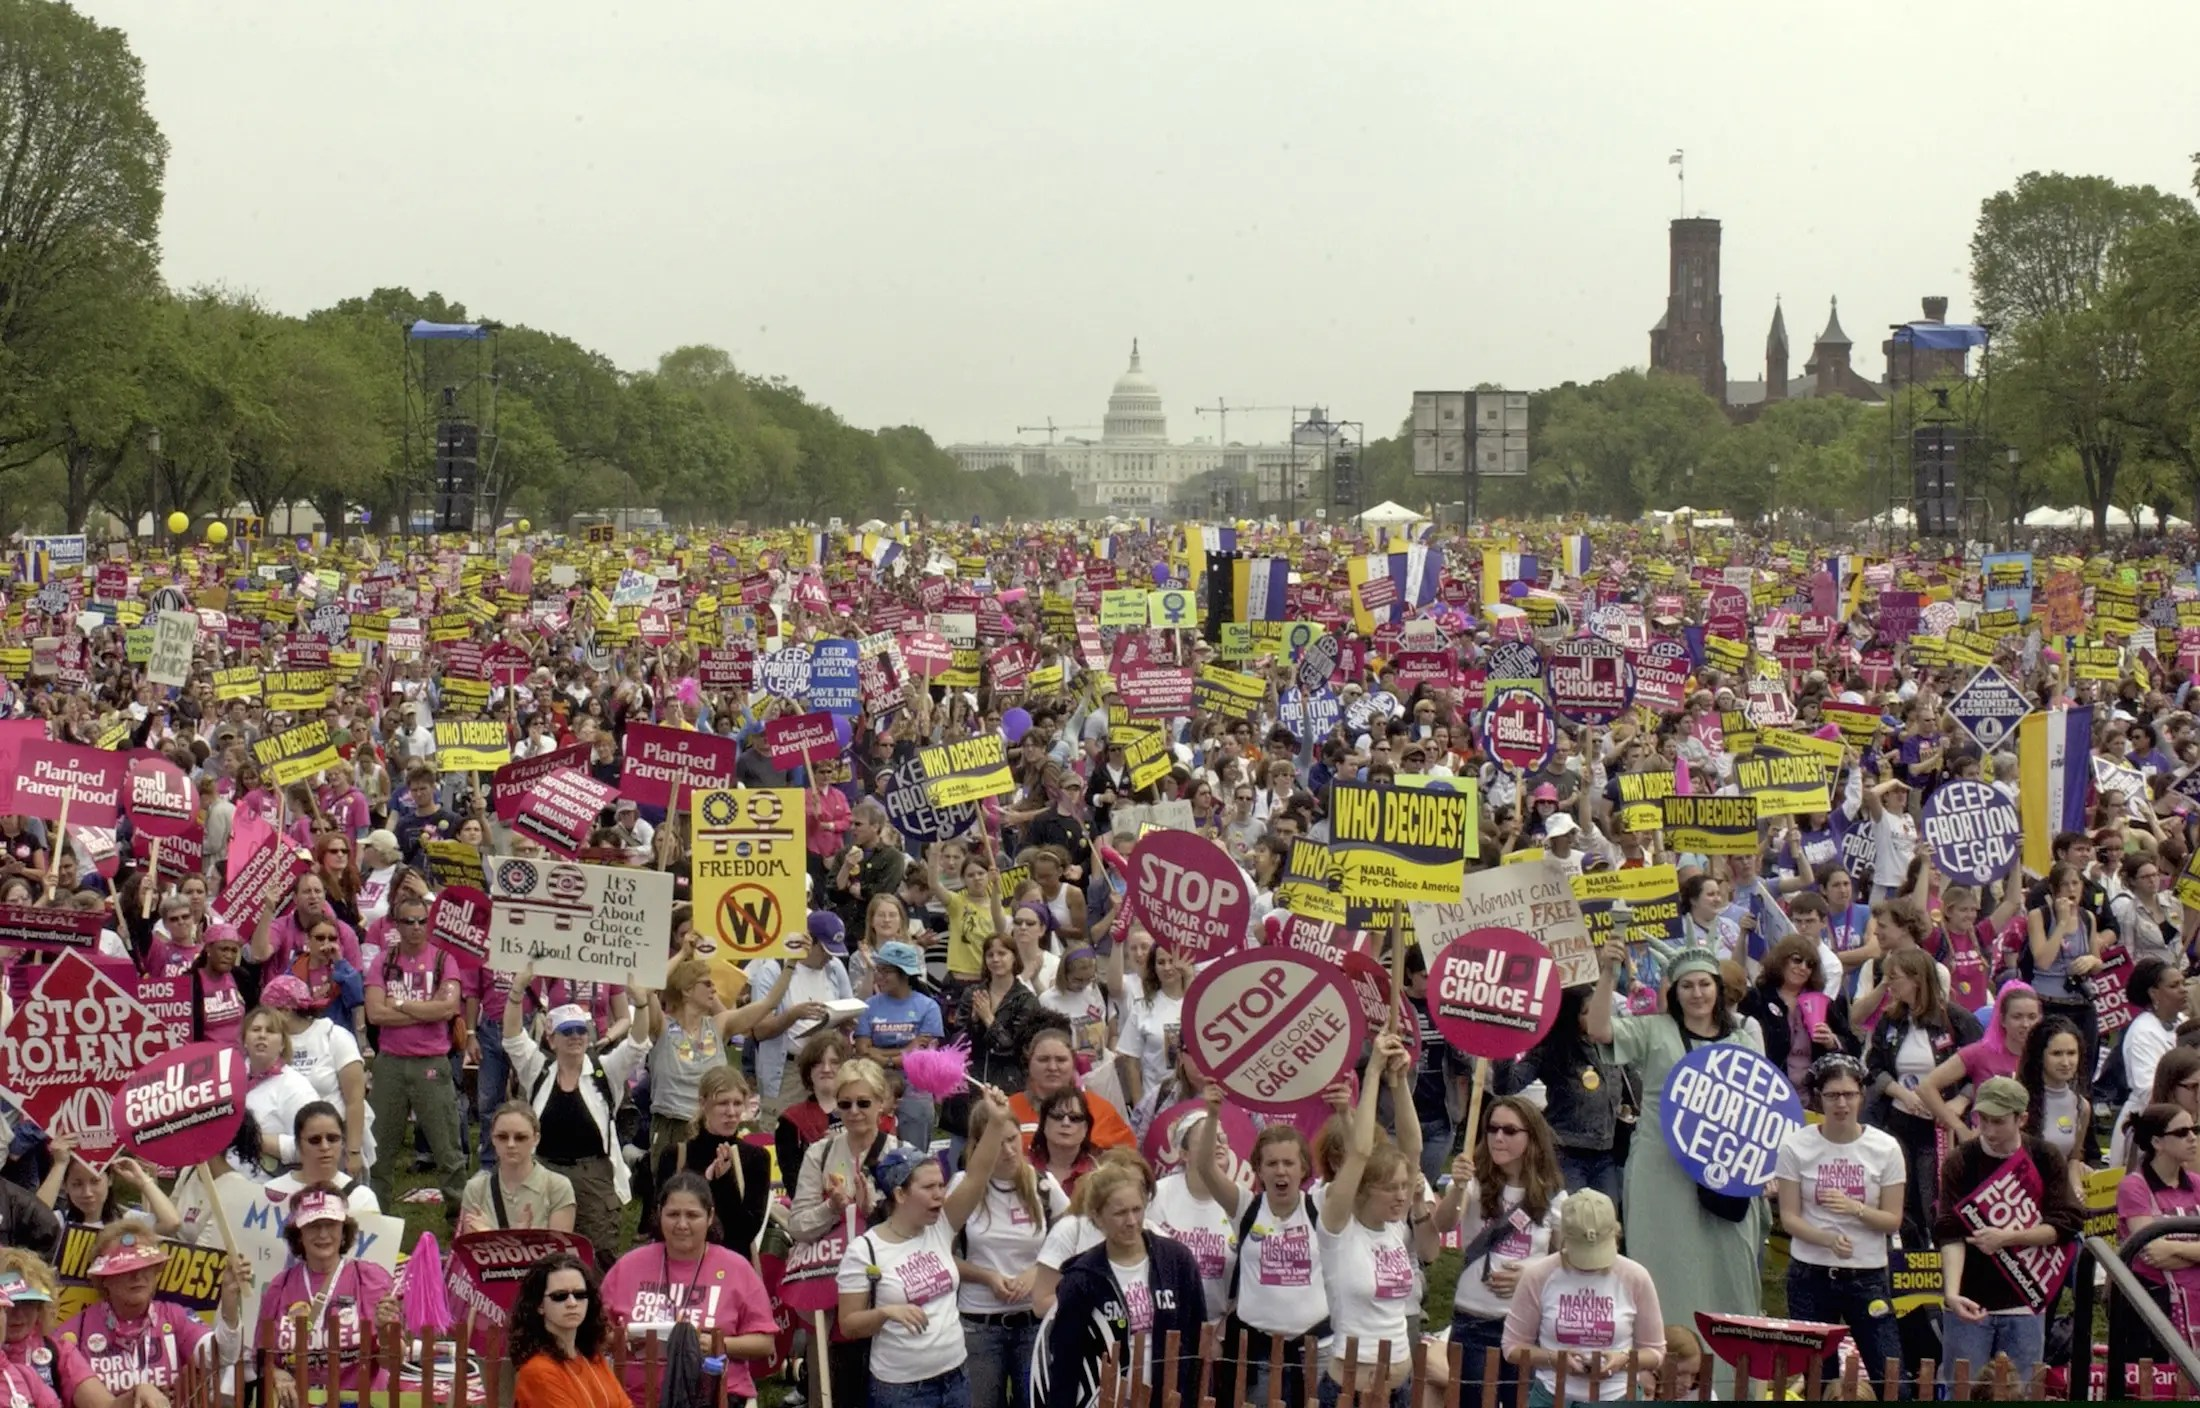 The women's movement, which began with suffrage, has since expanded to address reproductive rights, sexual violence, a lack of educational opportunities, and the wage gap. The March for Women's Lives took place in Washington DC in 2004.